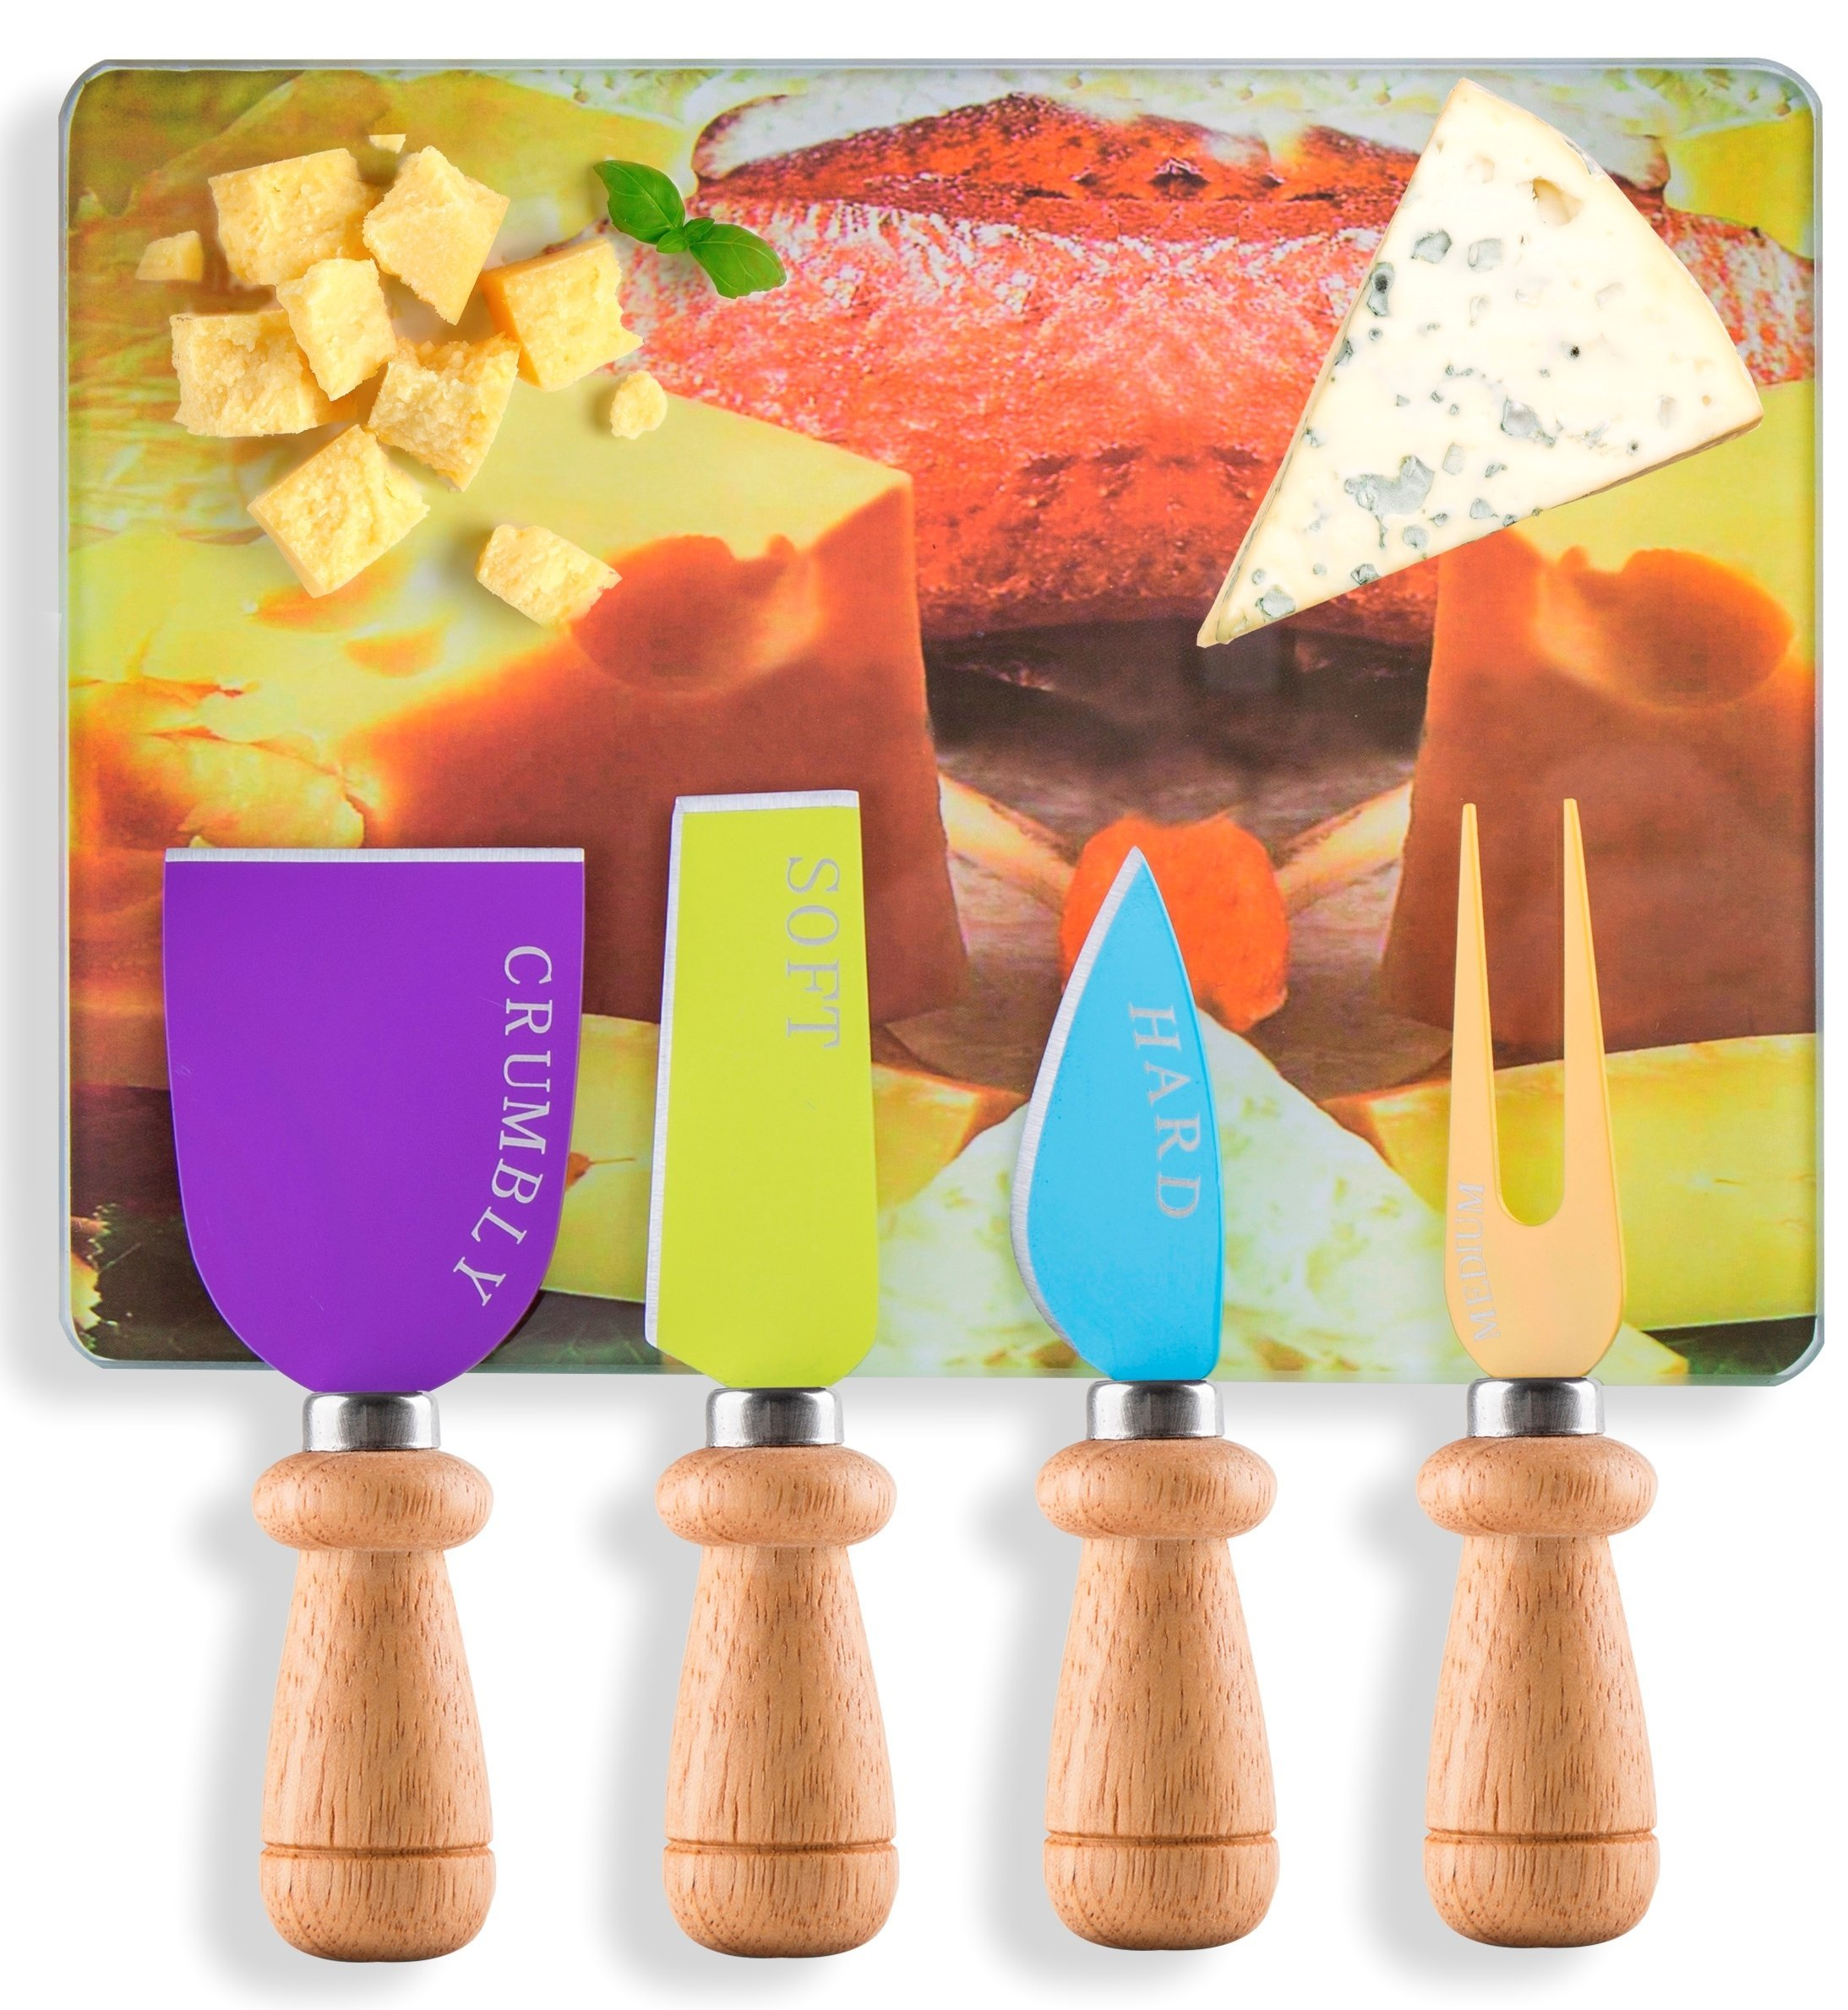 Cheese Knife & Board Set with 4 Knives & Cutting Board for Soft, Crumbly, Medium & Hard Cheese by Decodyne